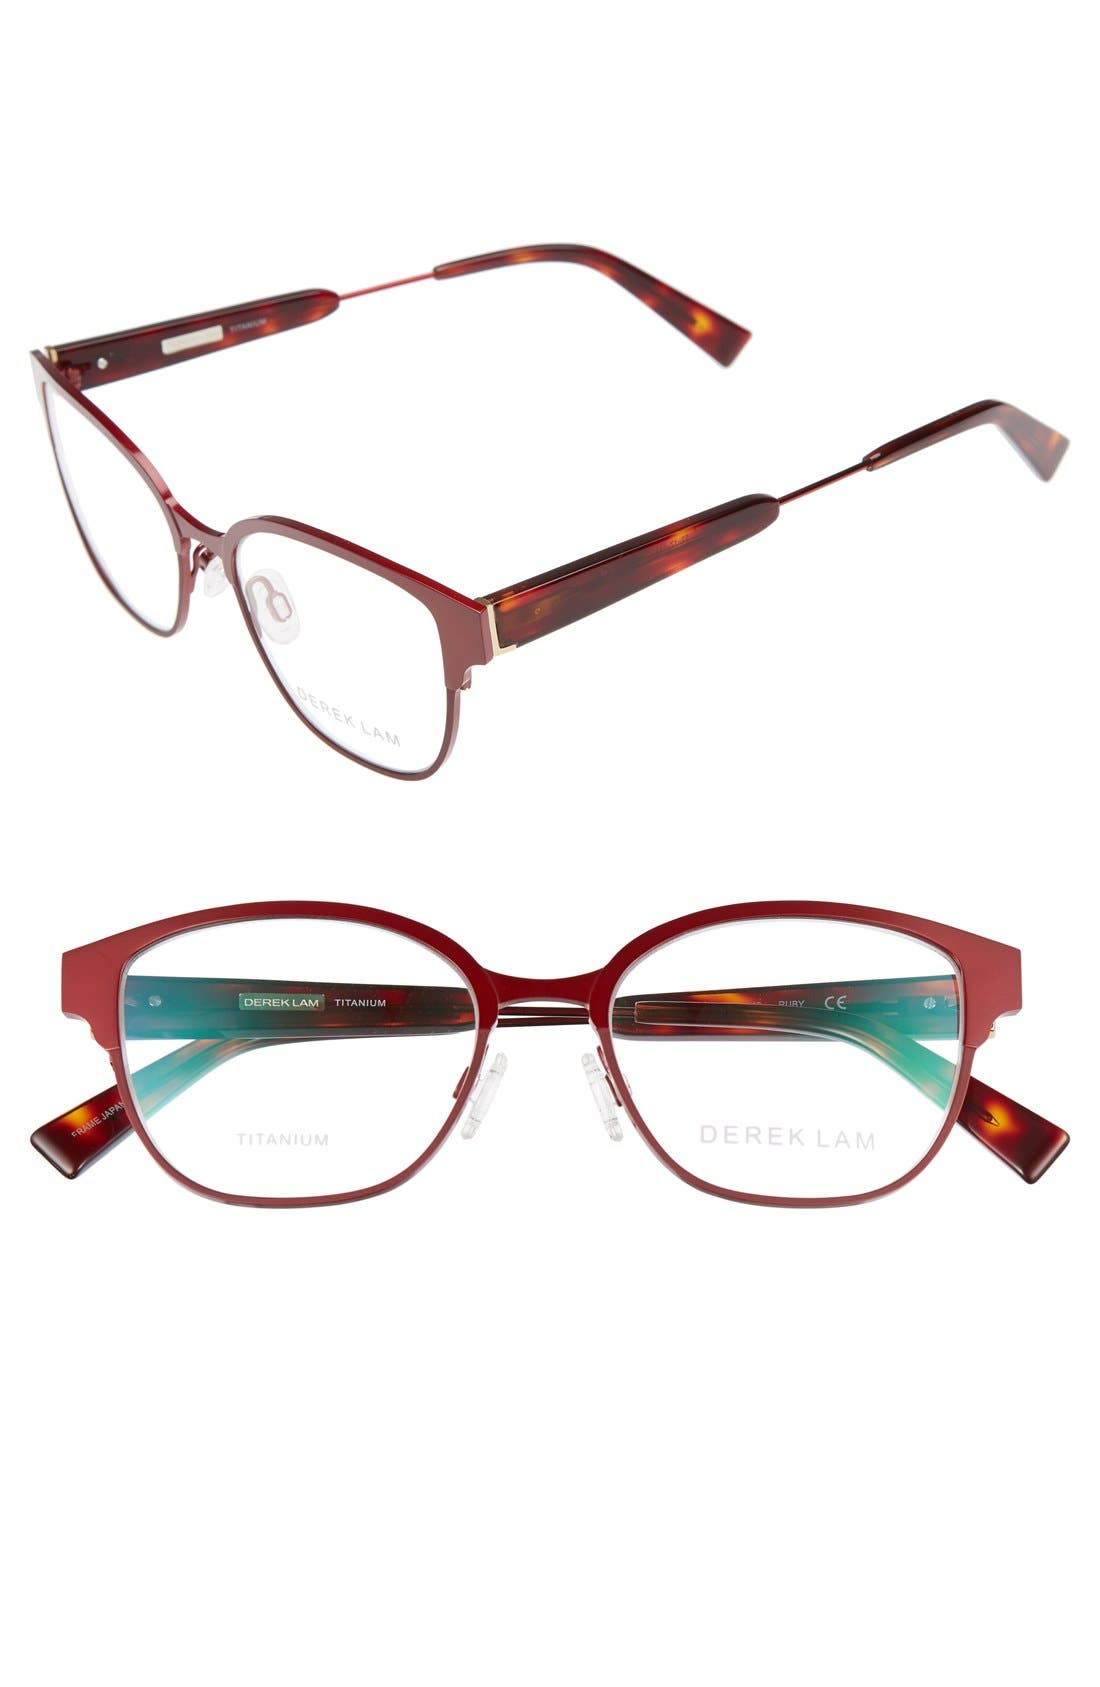 Main Image - Derek Lam 52mm Optical Glasses